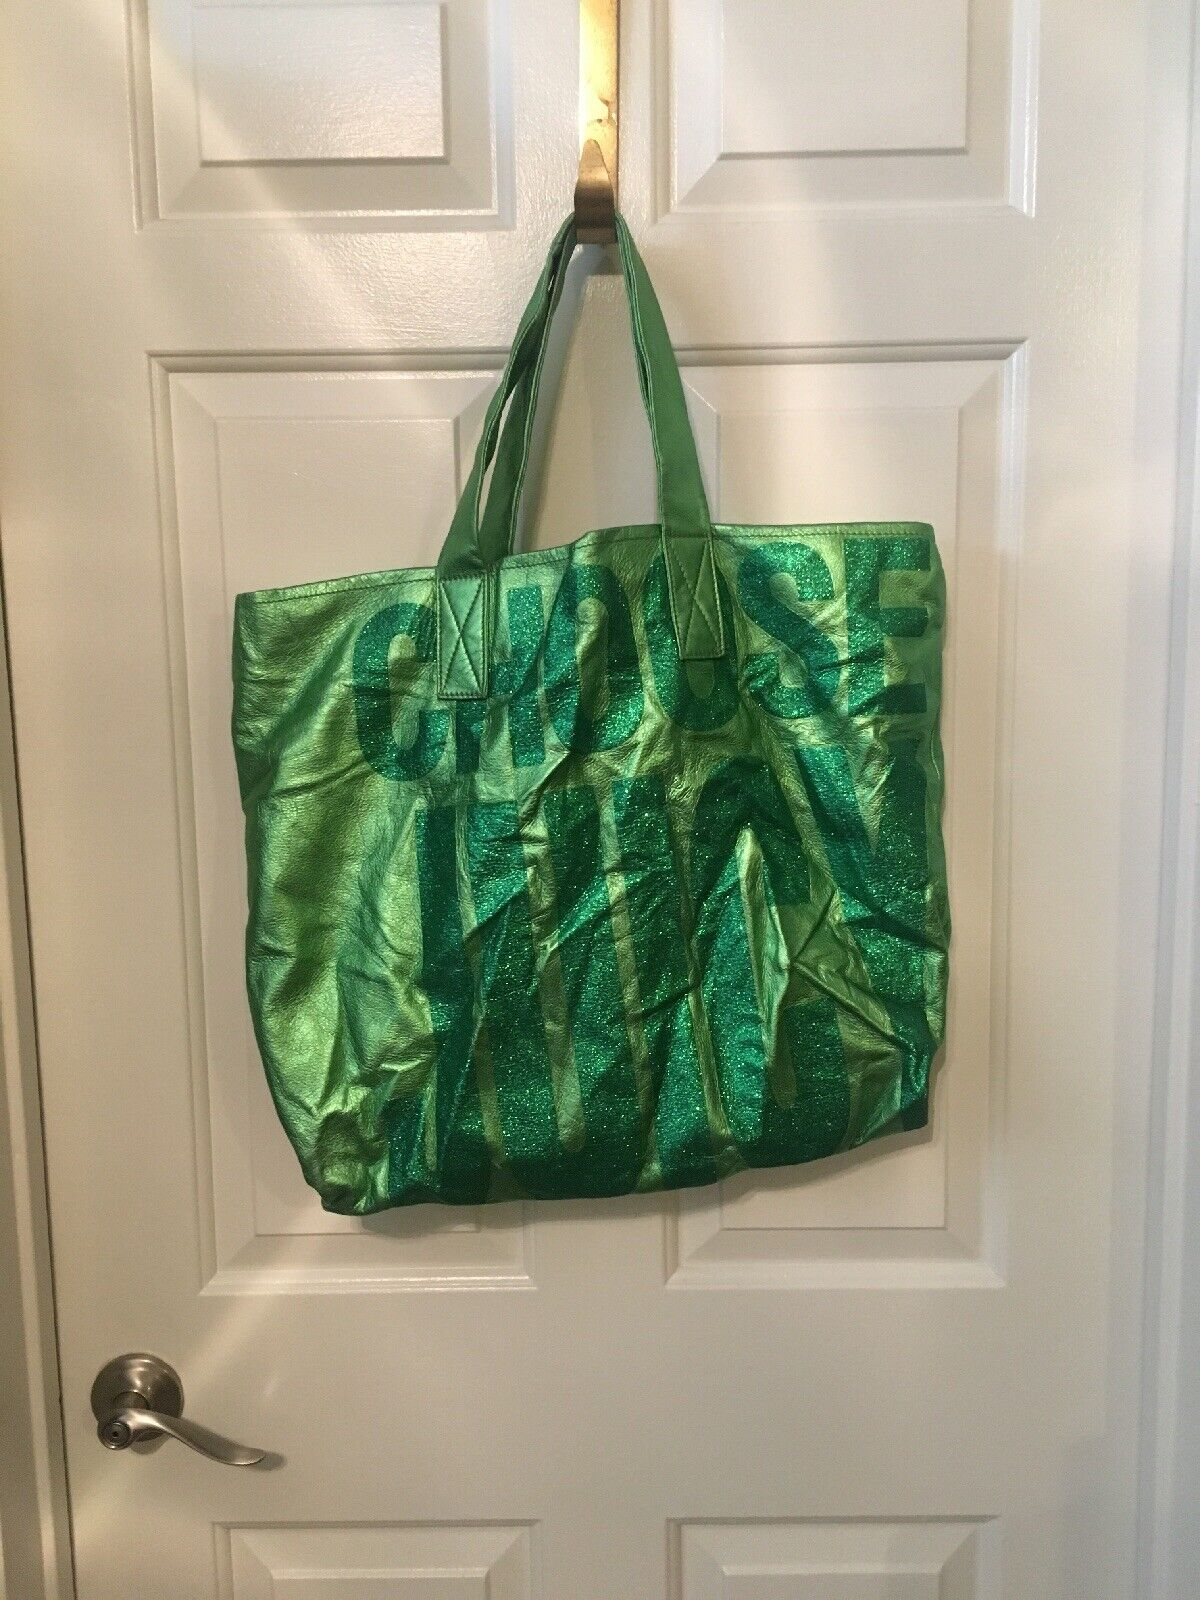 Juicy Couture Leather Glitter Tote Bag